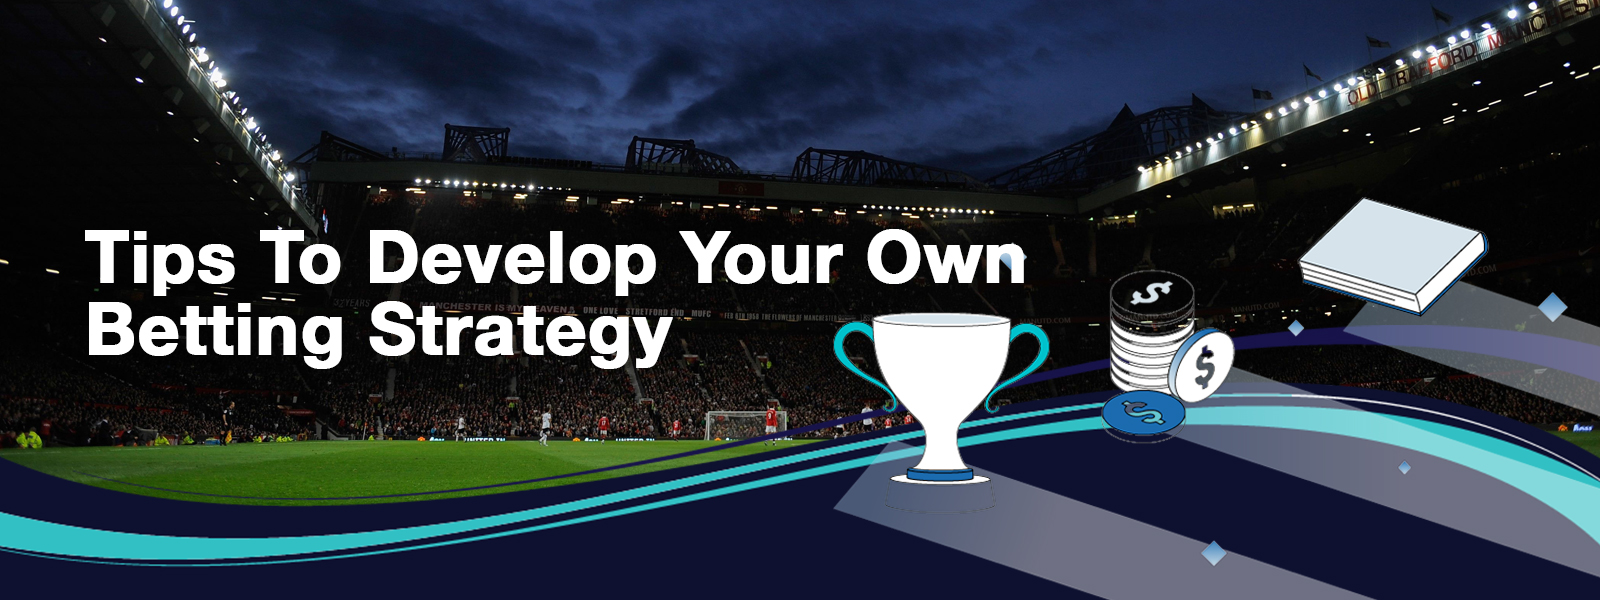 Tips To Develop Your Own Betting Strategy